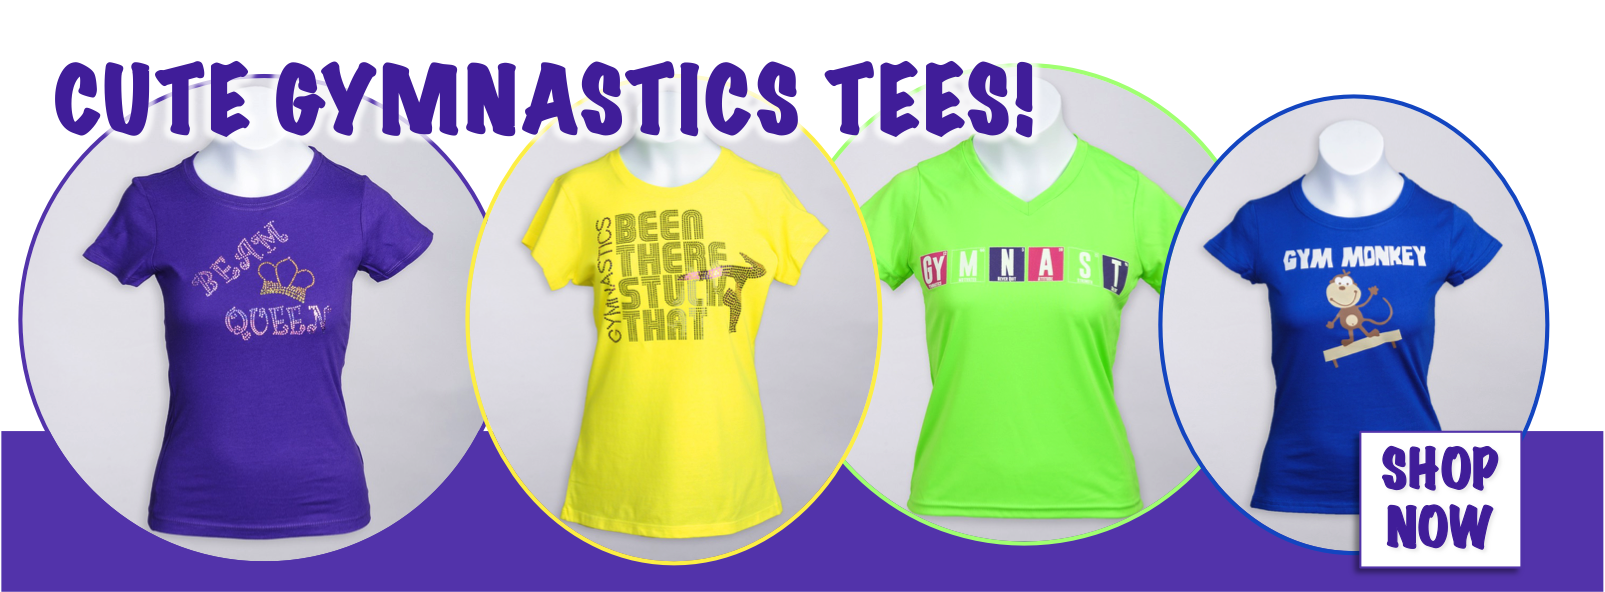 Find Cute Gymnastics Tee Shirts and More at Elite Etc!